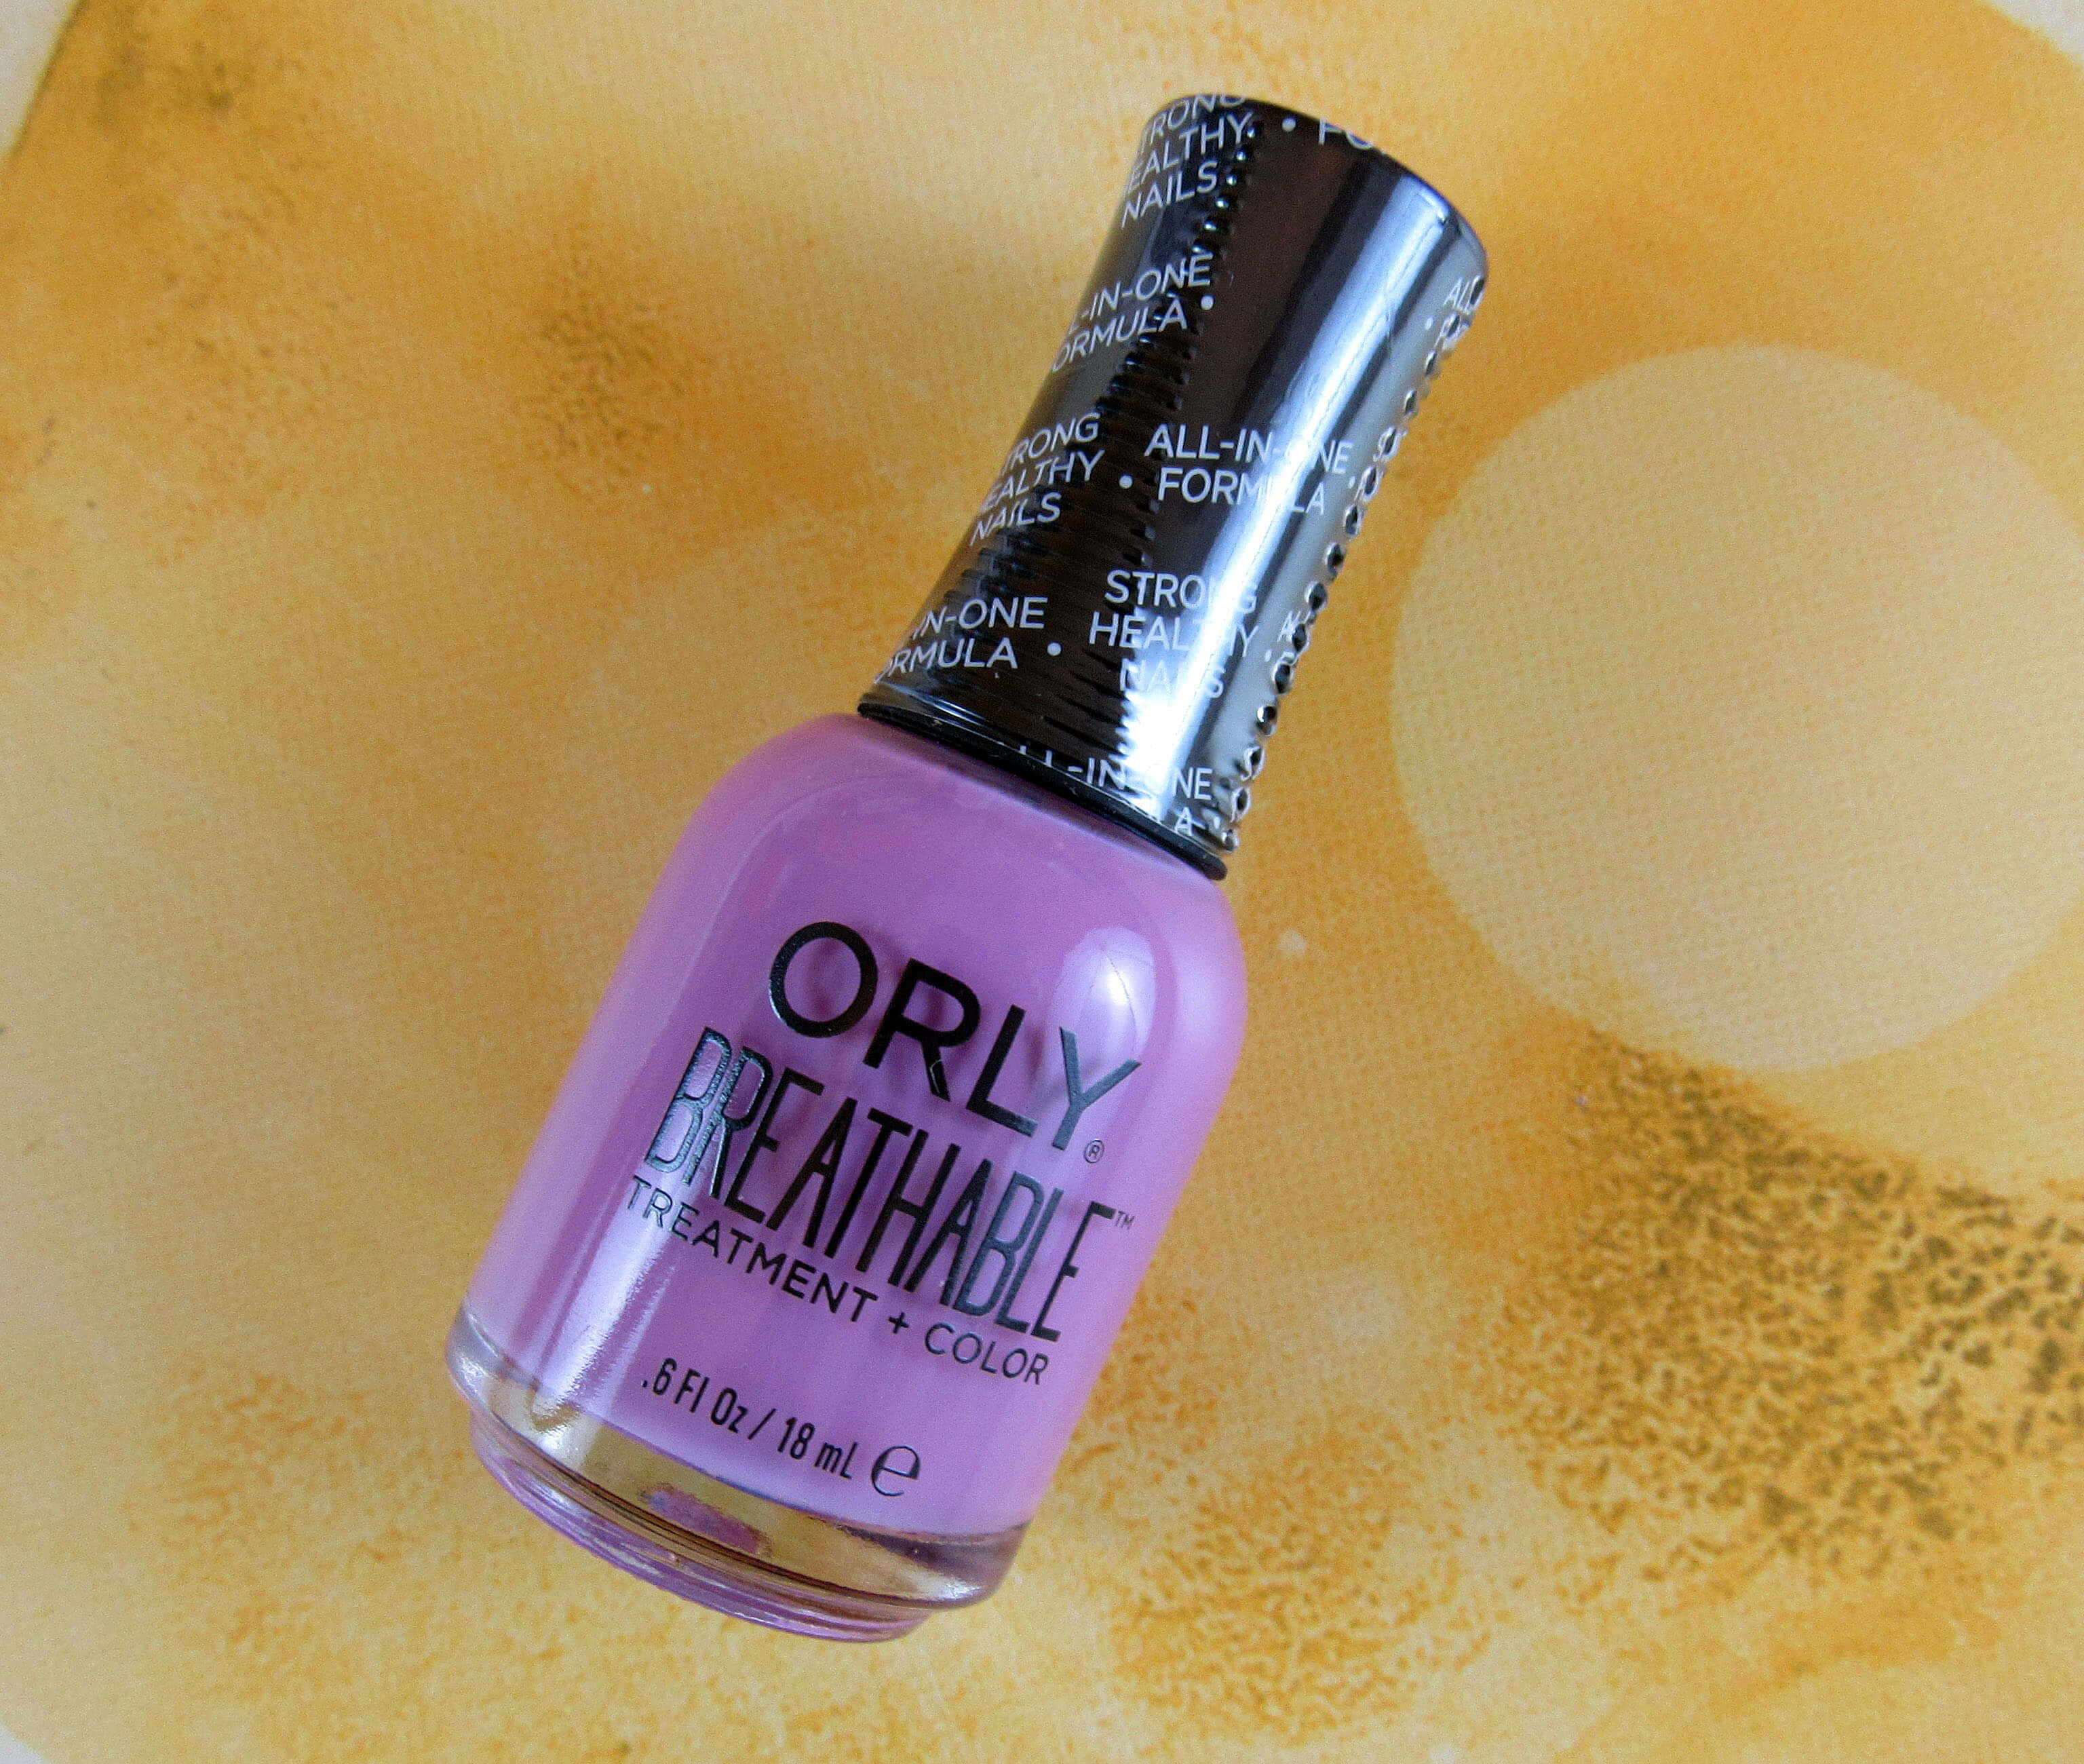 Orly BreathableTreatment + Color